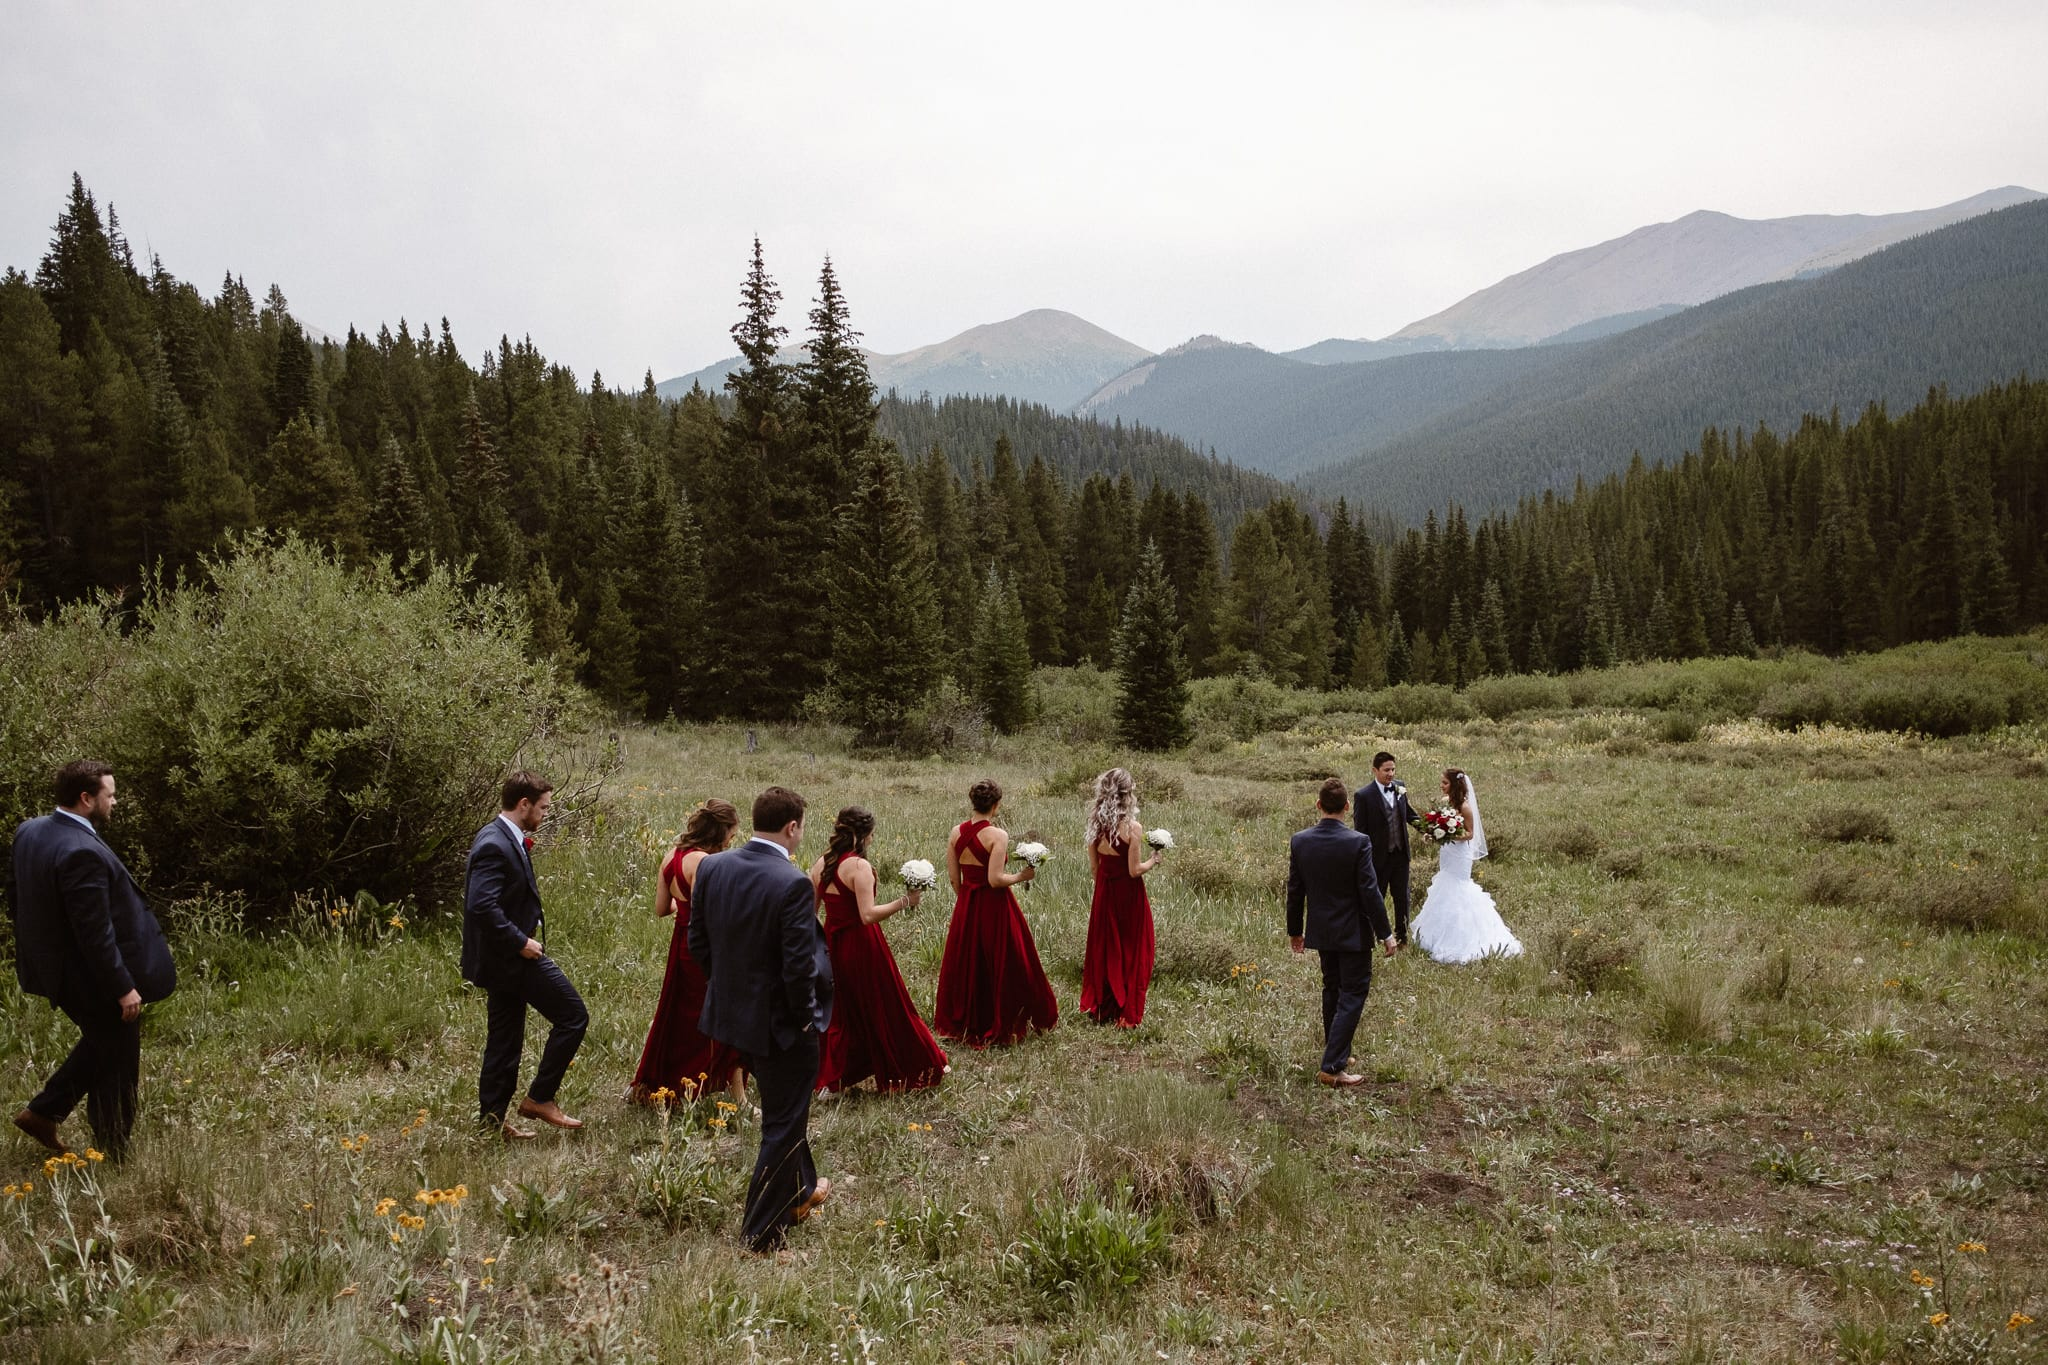 Lodge at Breckenridge Wedding Photographer, Colorado mountain wedding photographer, intimate wedding, bride and groom walking through alpine meadow with wedding party, bride and groom portrait, wedding photos